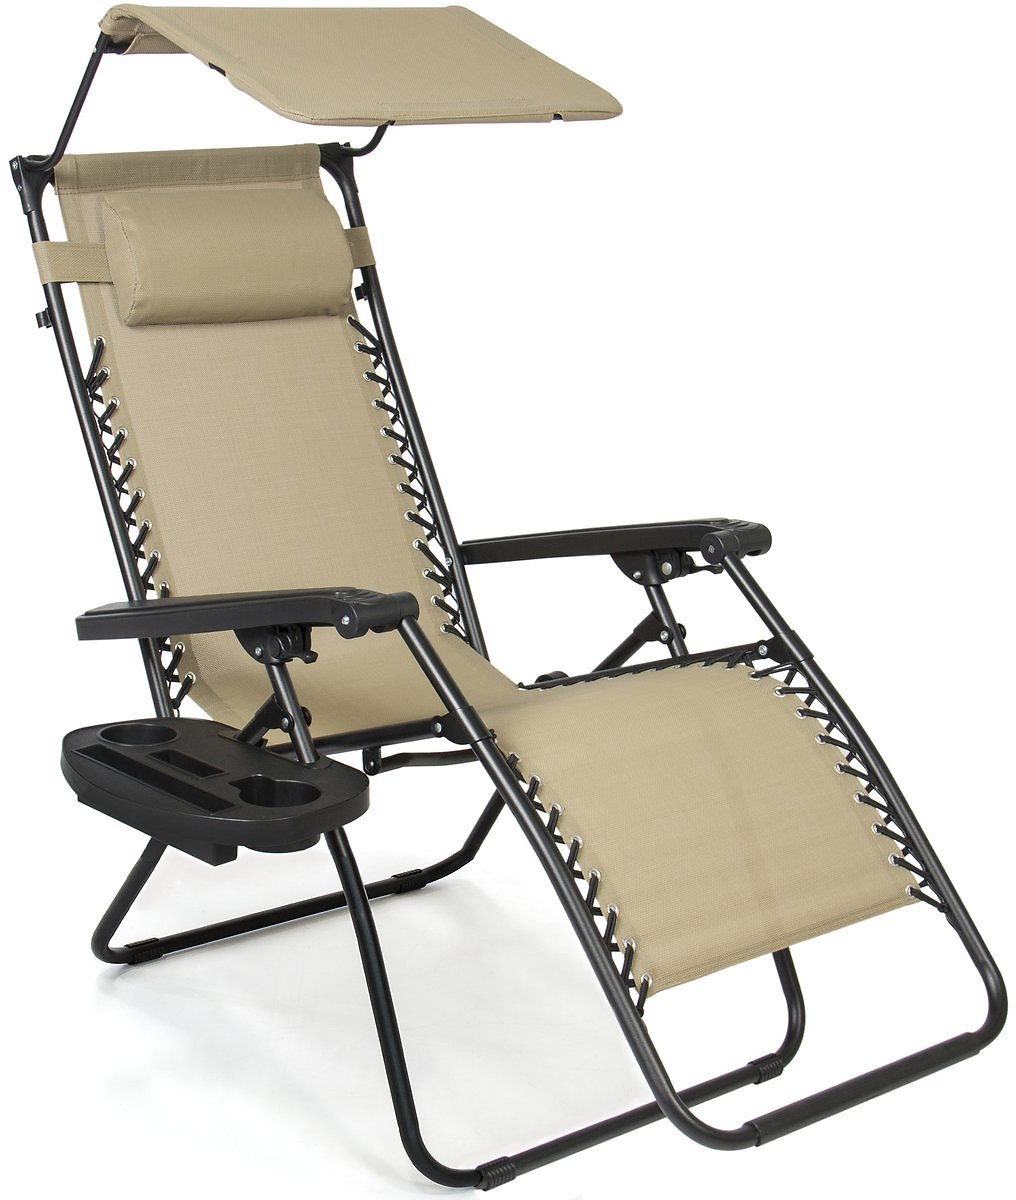 Folding Zero Gravity Recliner Lounge Chair w/Canopy